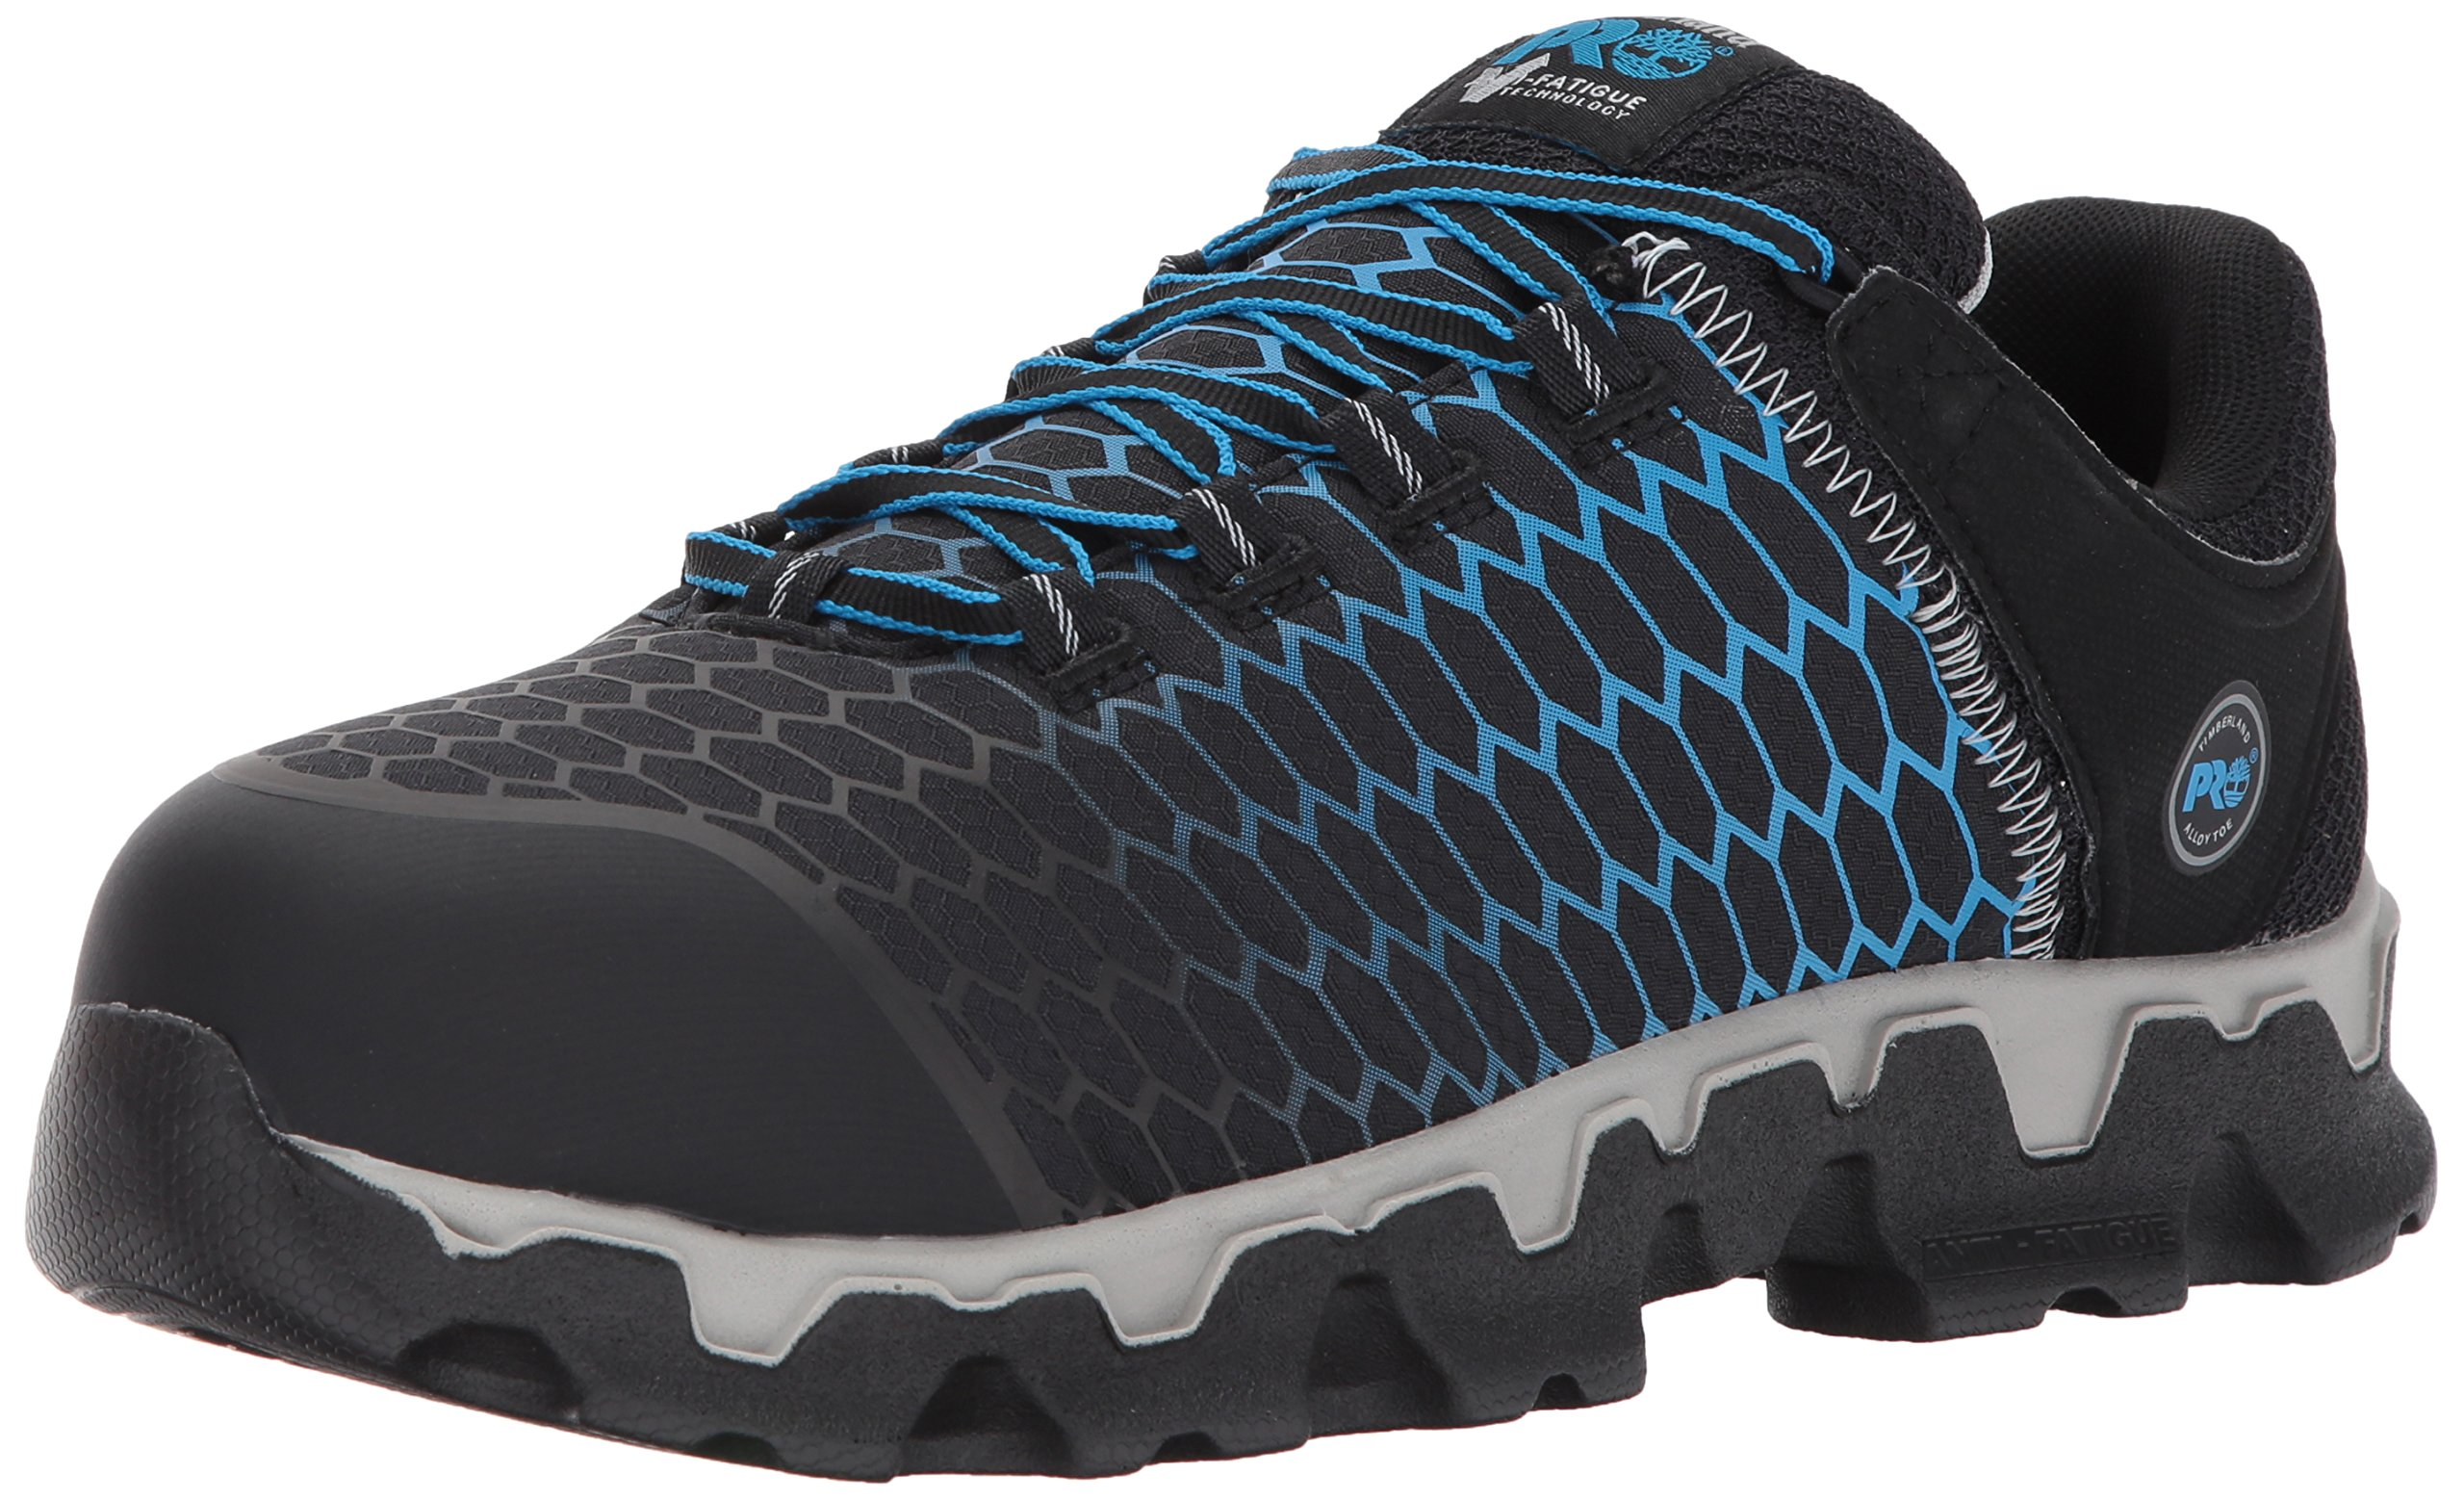 Timberland PRO Men's Powertrain Sport Alloy Toe EH Industrial and Construction Shoe, Black Ripstop Nylon with Blue, 13 W US